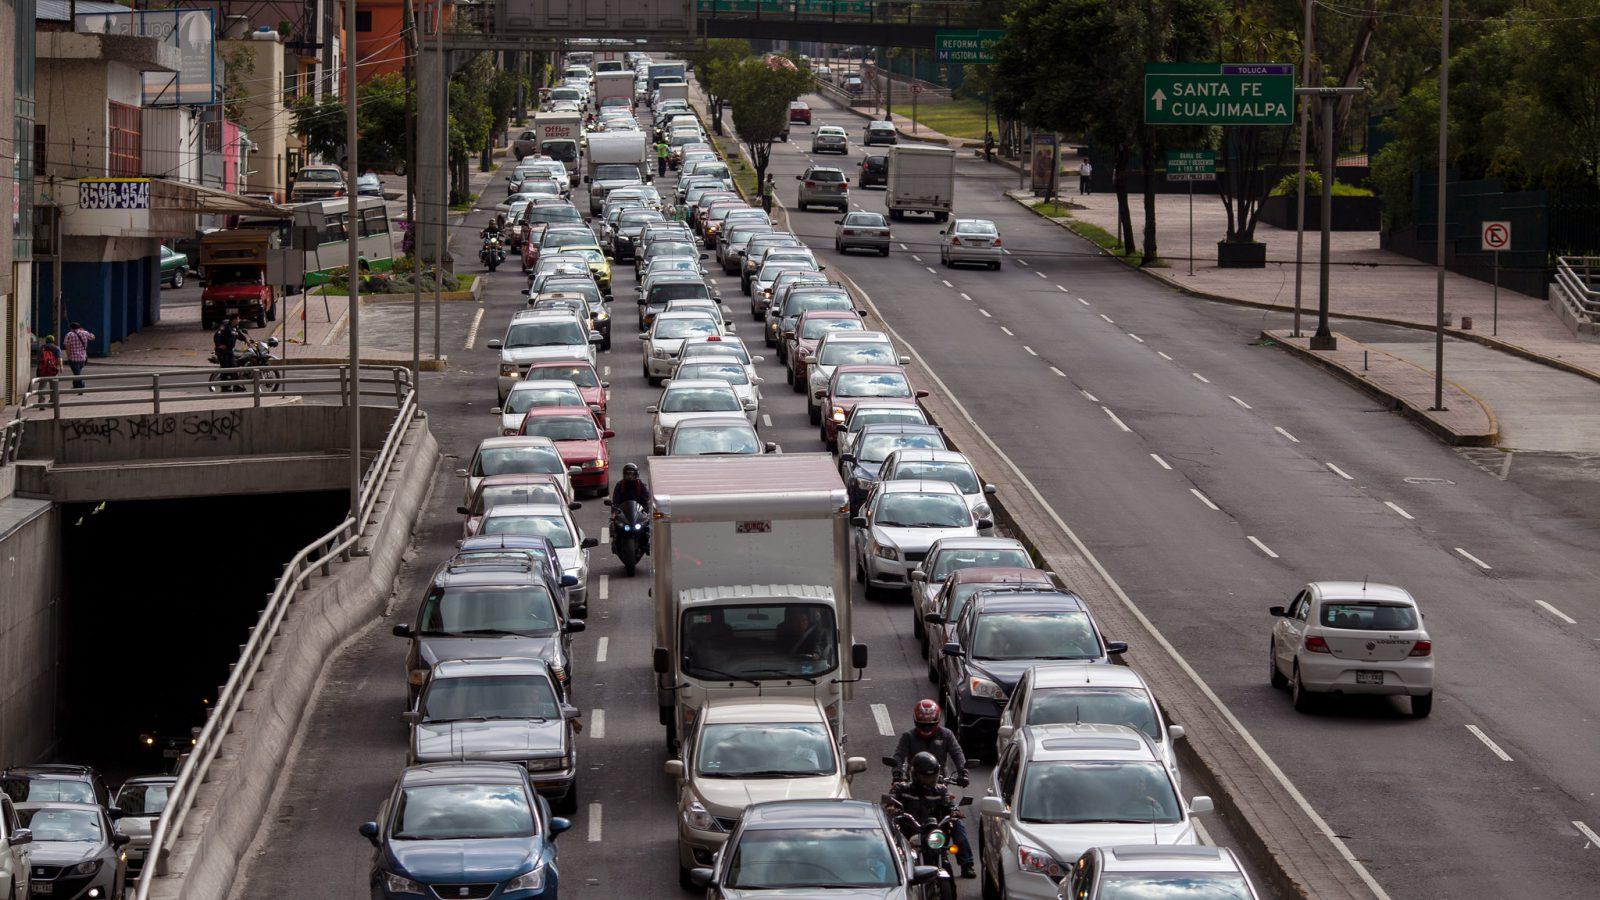 For Your CITIES WITH THE WORST TRAFFIC